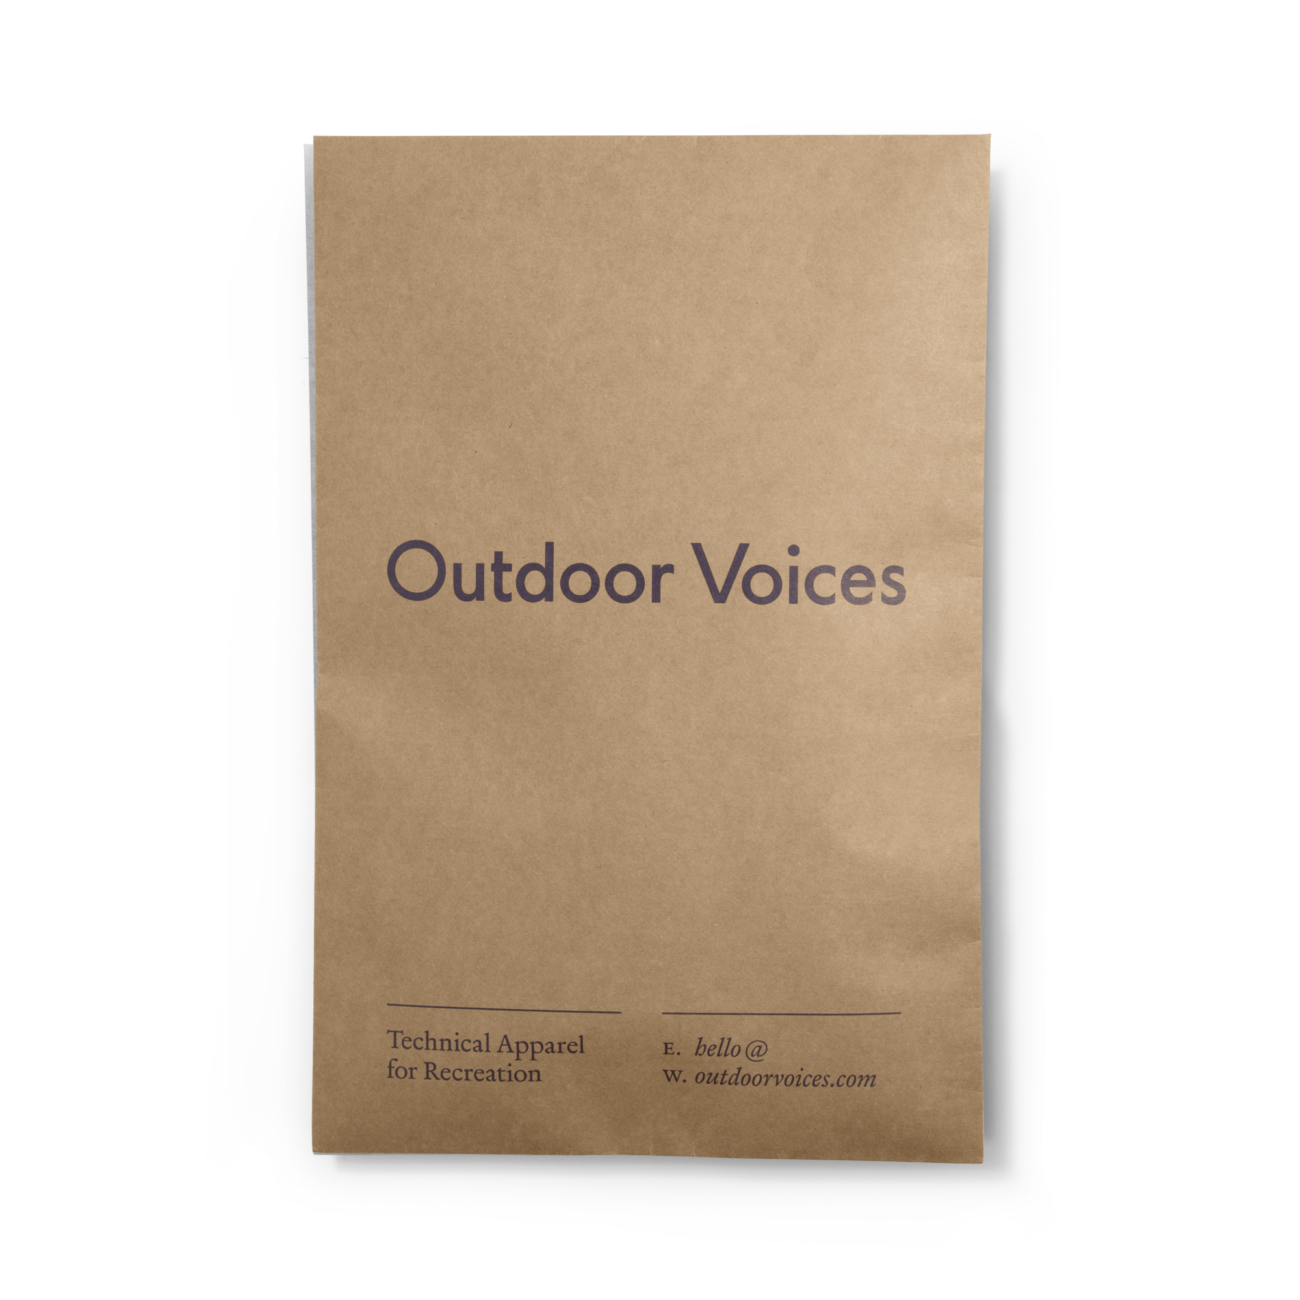 Outdoor Voices stores apparel in ready-to-ship, clear bags that are placed in a kraft mailer for shipping. In storage and in shipping, the bag protects apparel from dirt, liquid, or snags. What every brand can learn from Amazon's Frustration-Free Packaging guidelines